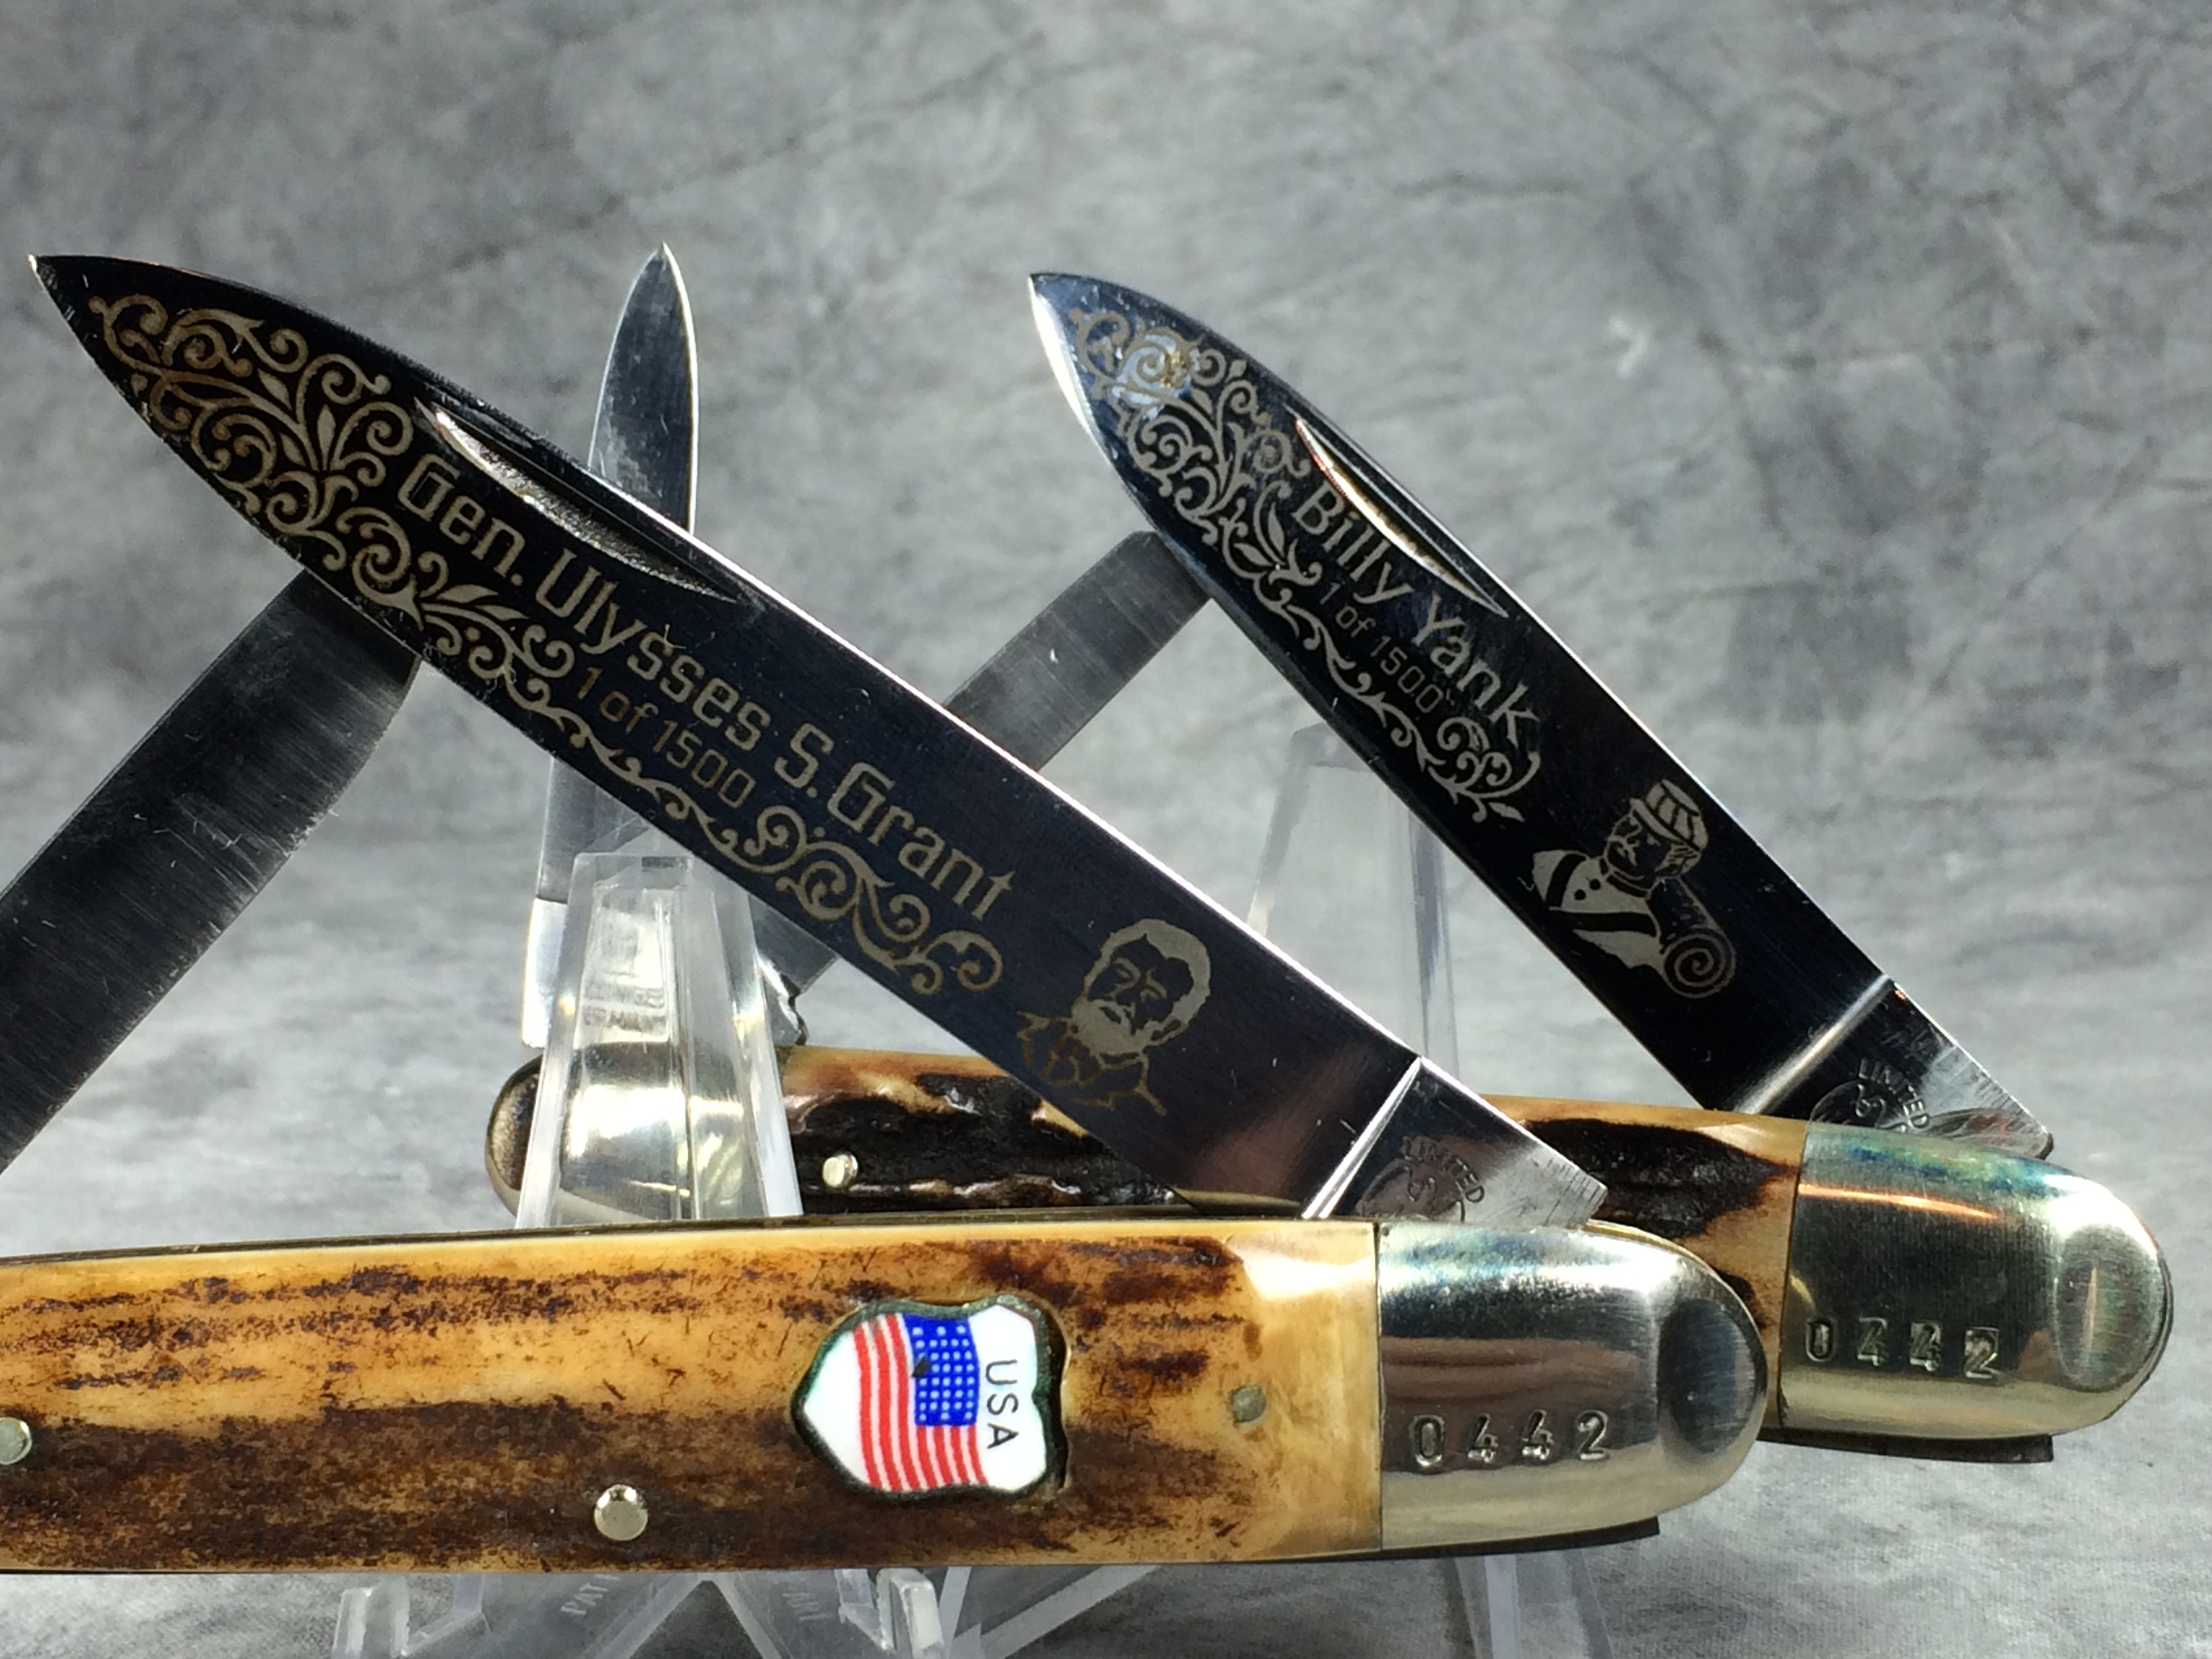 dating kissing crane knives We know that when you experience complete value with your purchase of a knife, let's say one of our canal street knives or kissing crane knives.